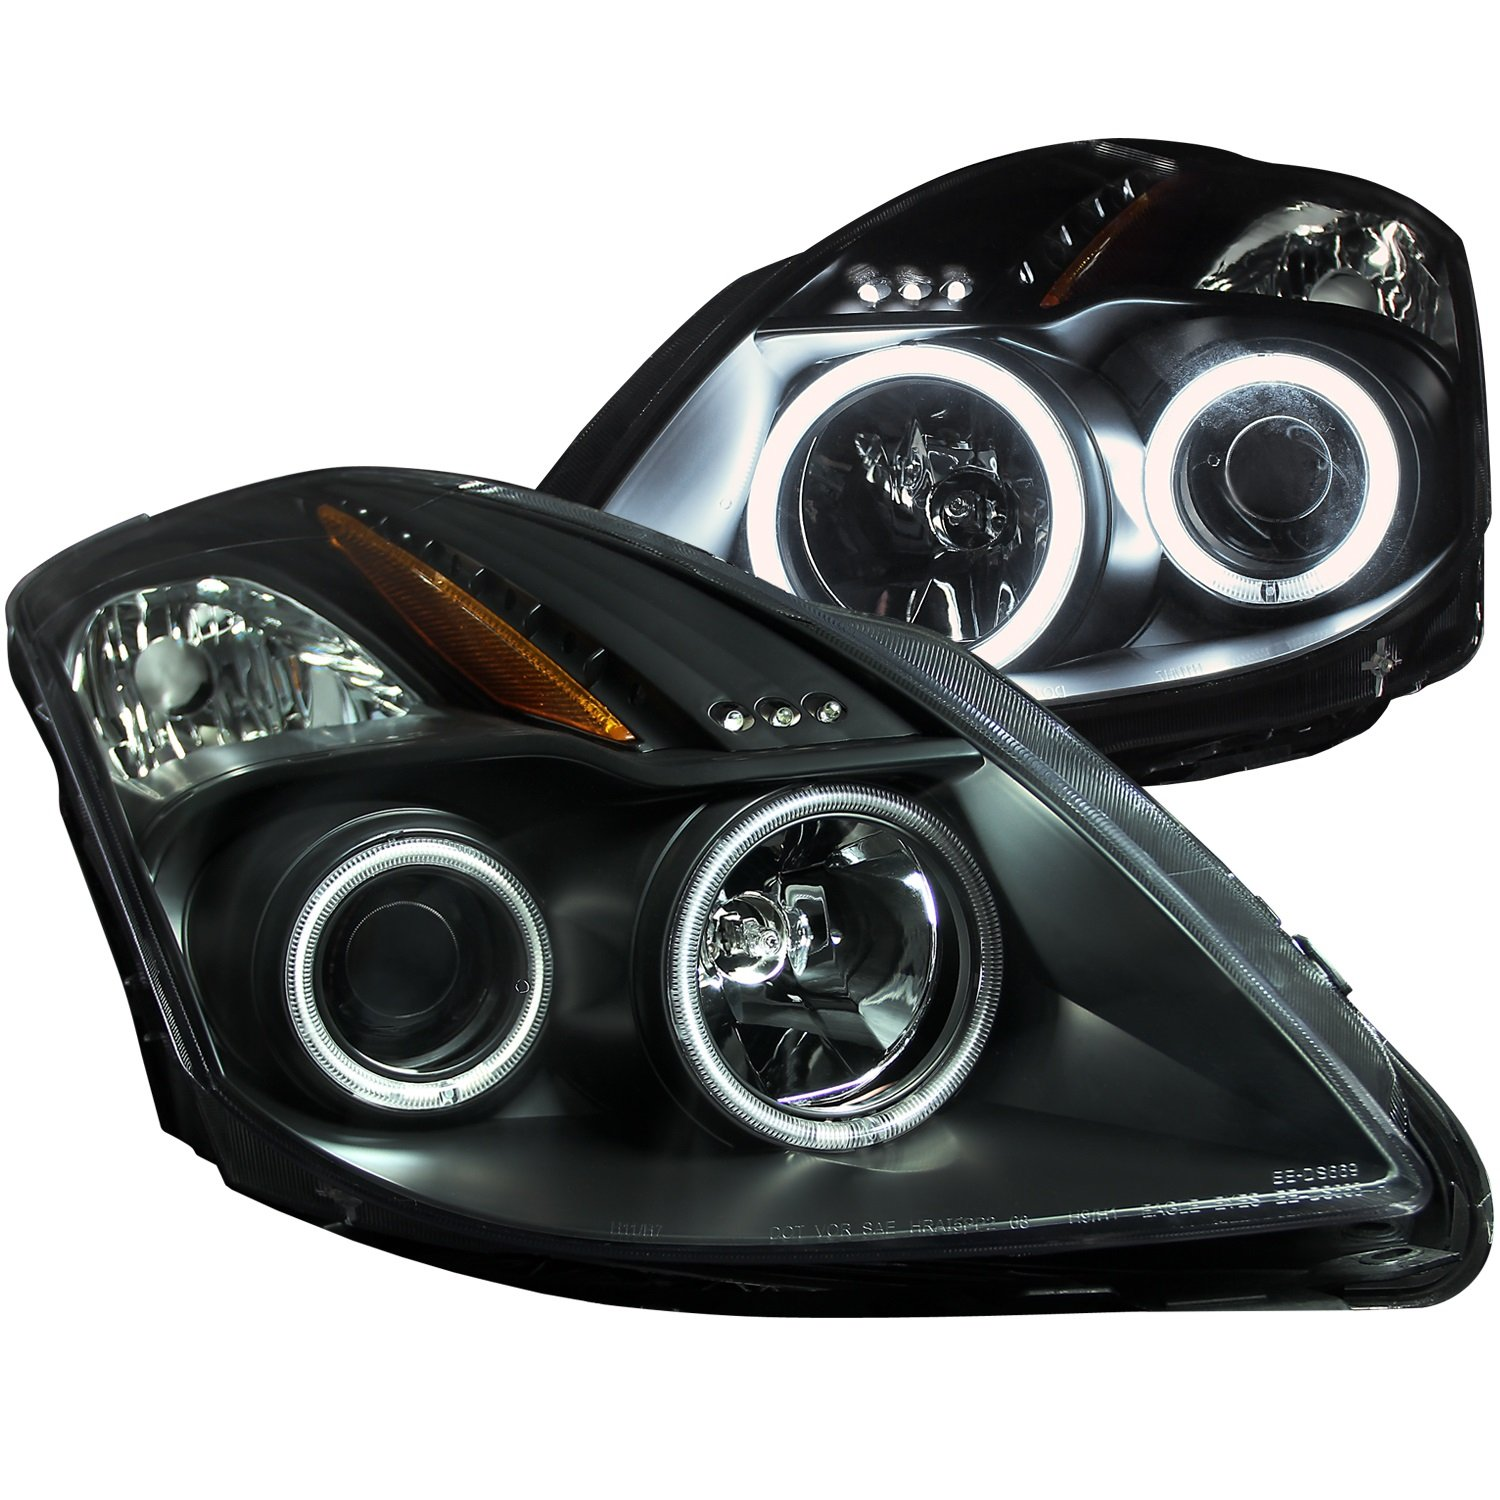 Amazon anzousa 121395 blackclearamber projector headlight amazon anzousa 121395 blackclearamber projector headlight for nissan altima automotive vanachro Choice Image